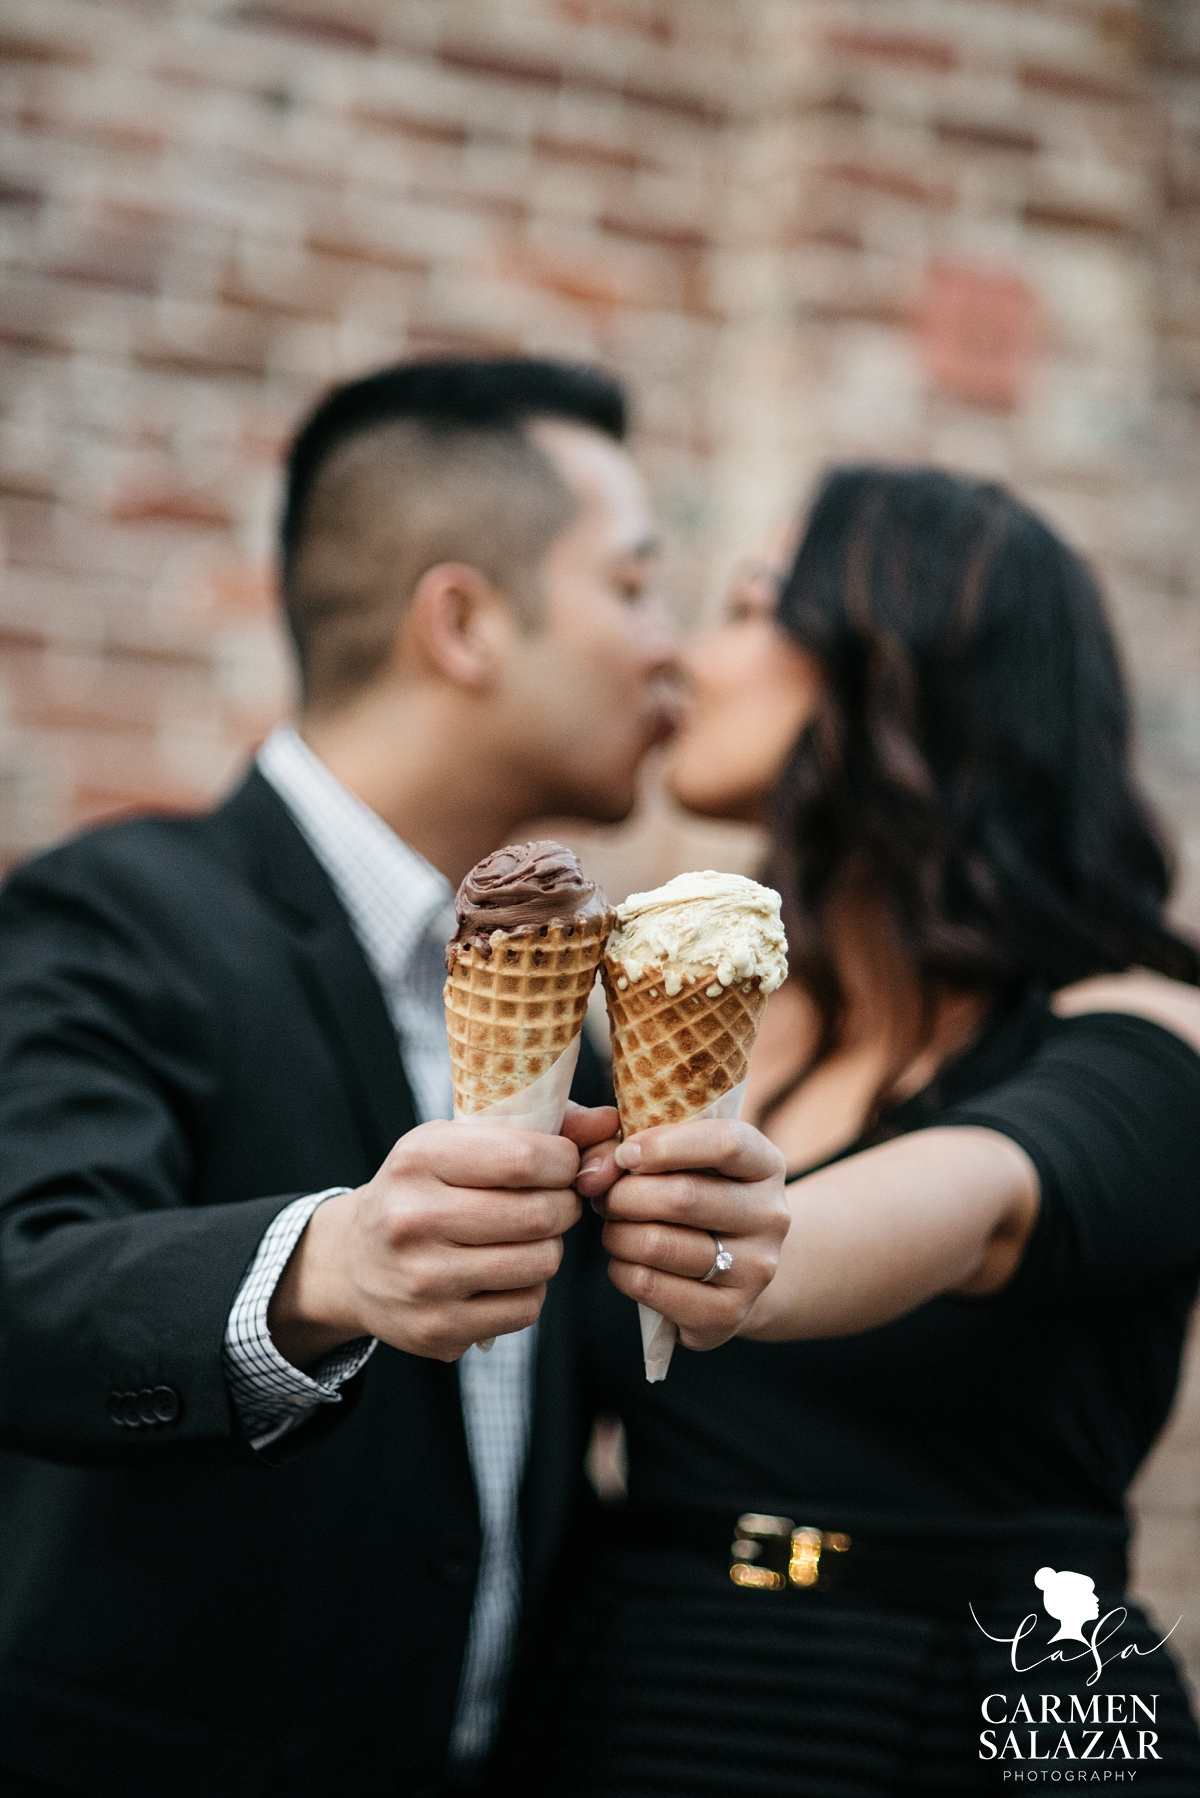 Gelato inspiration engagement session - Carmen Salazar